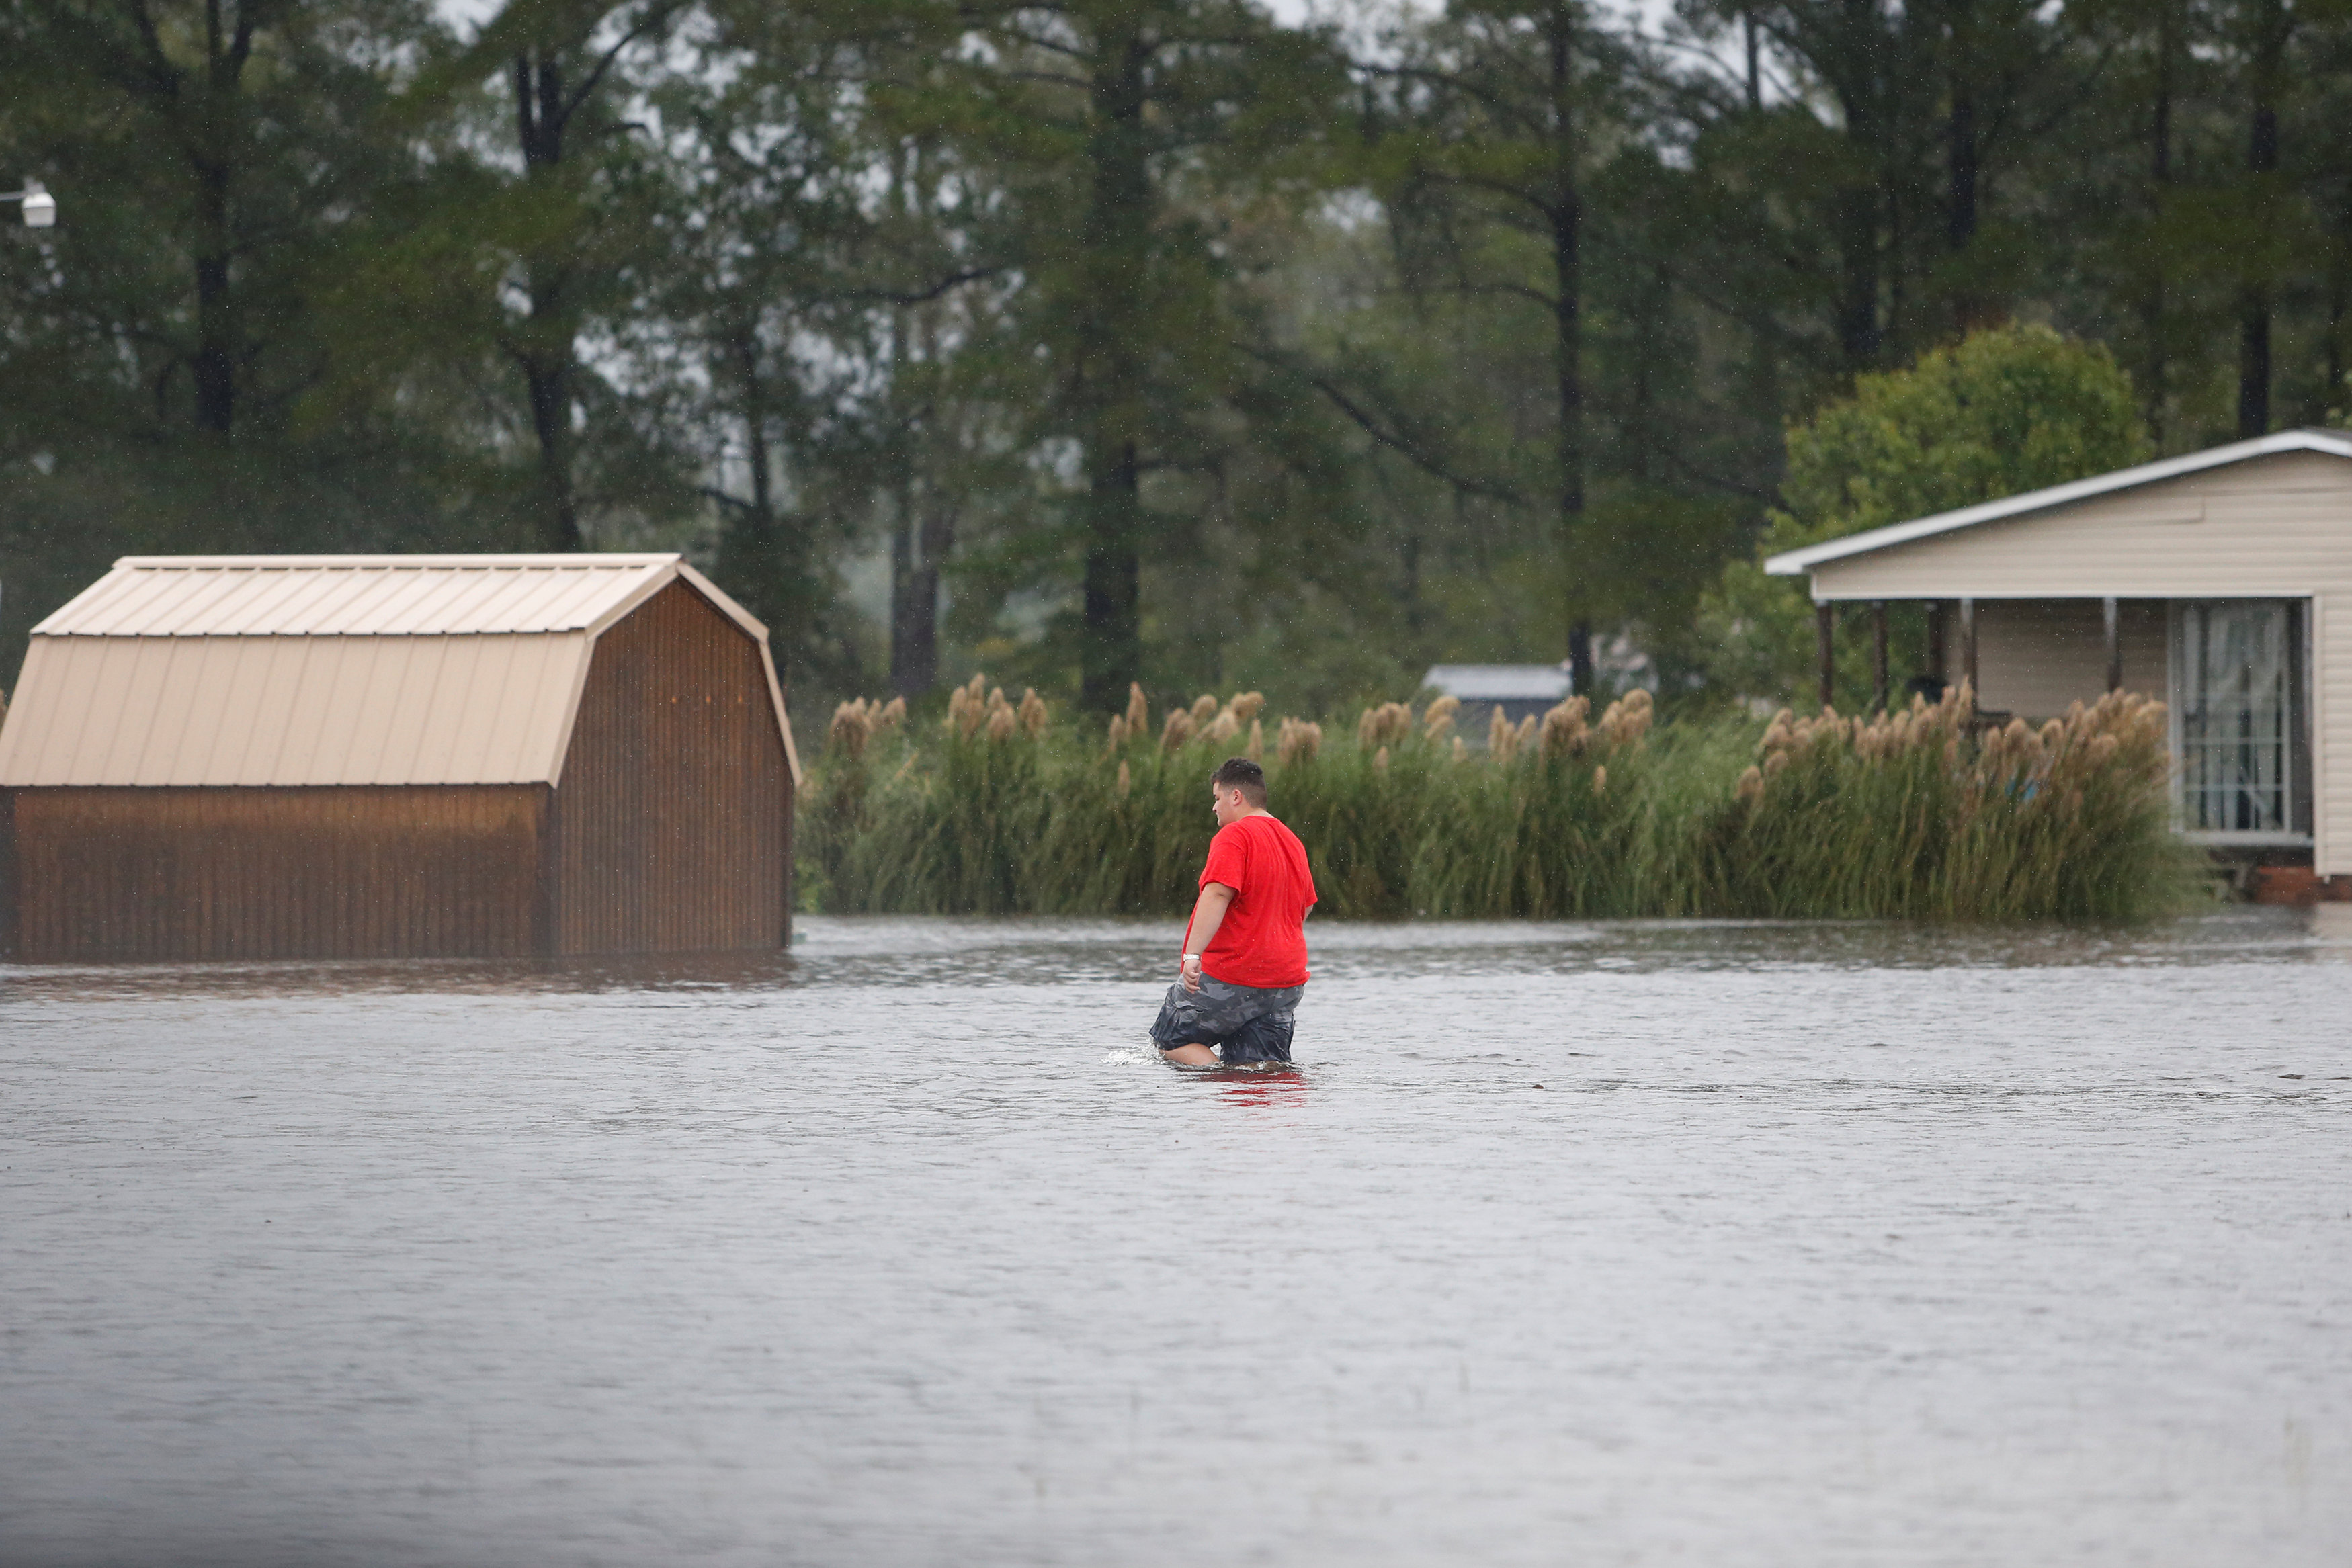 A man walks through a flooded field to his home during Tropical Storm Florence in Lumberton